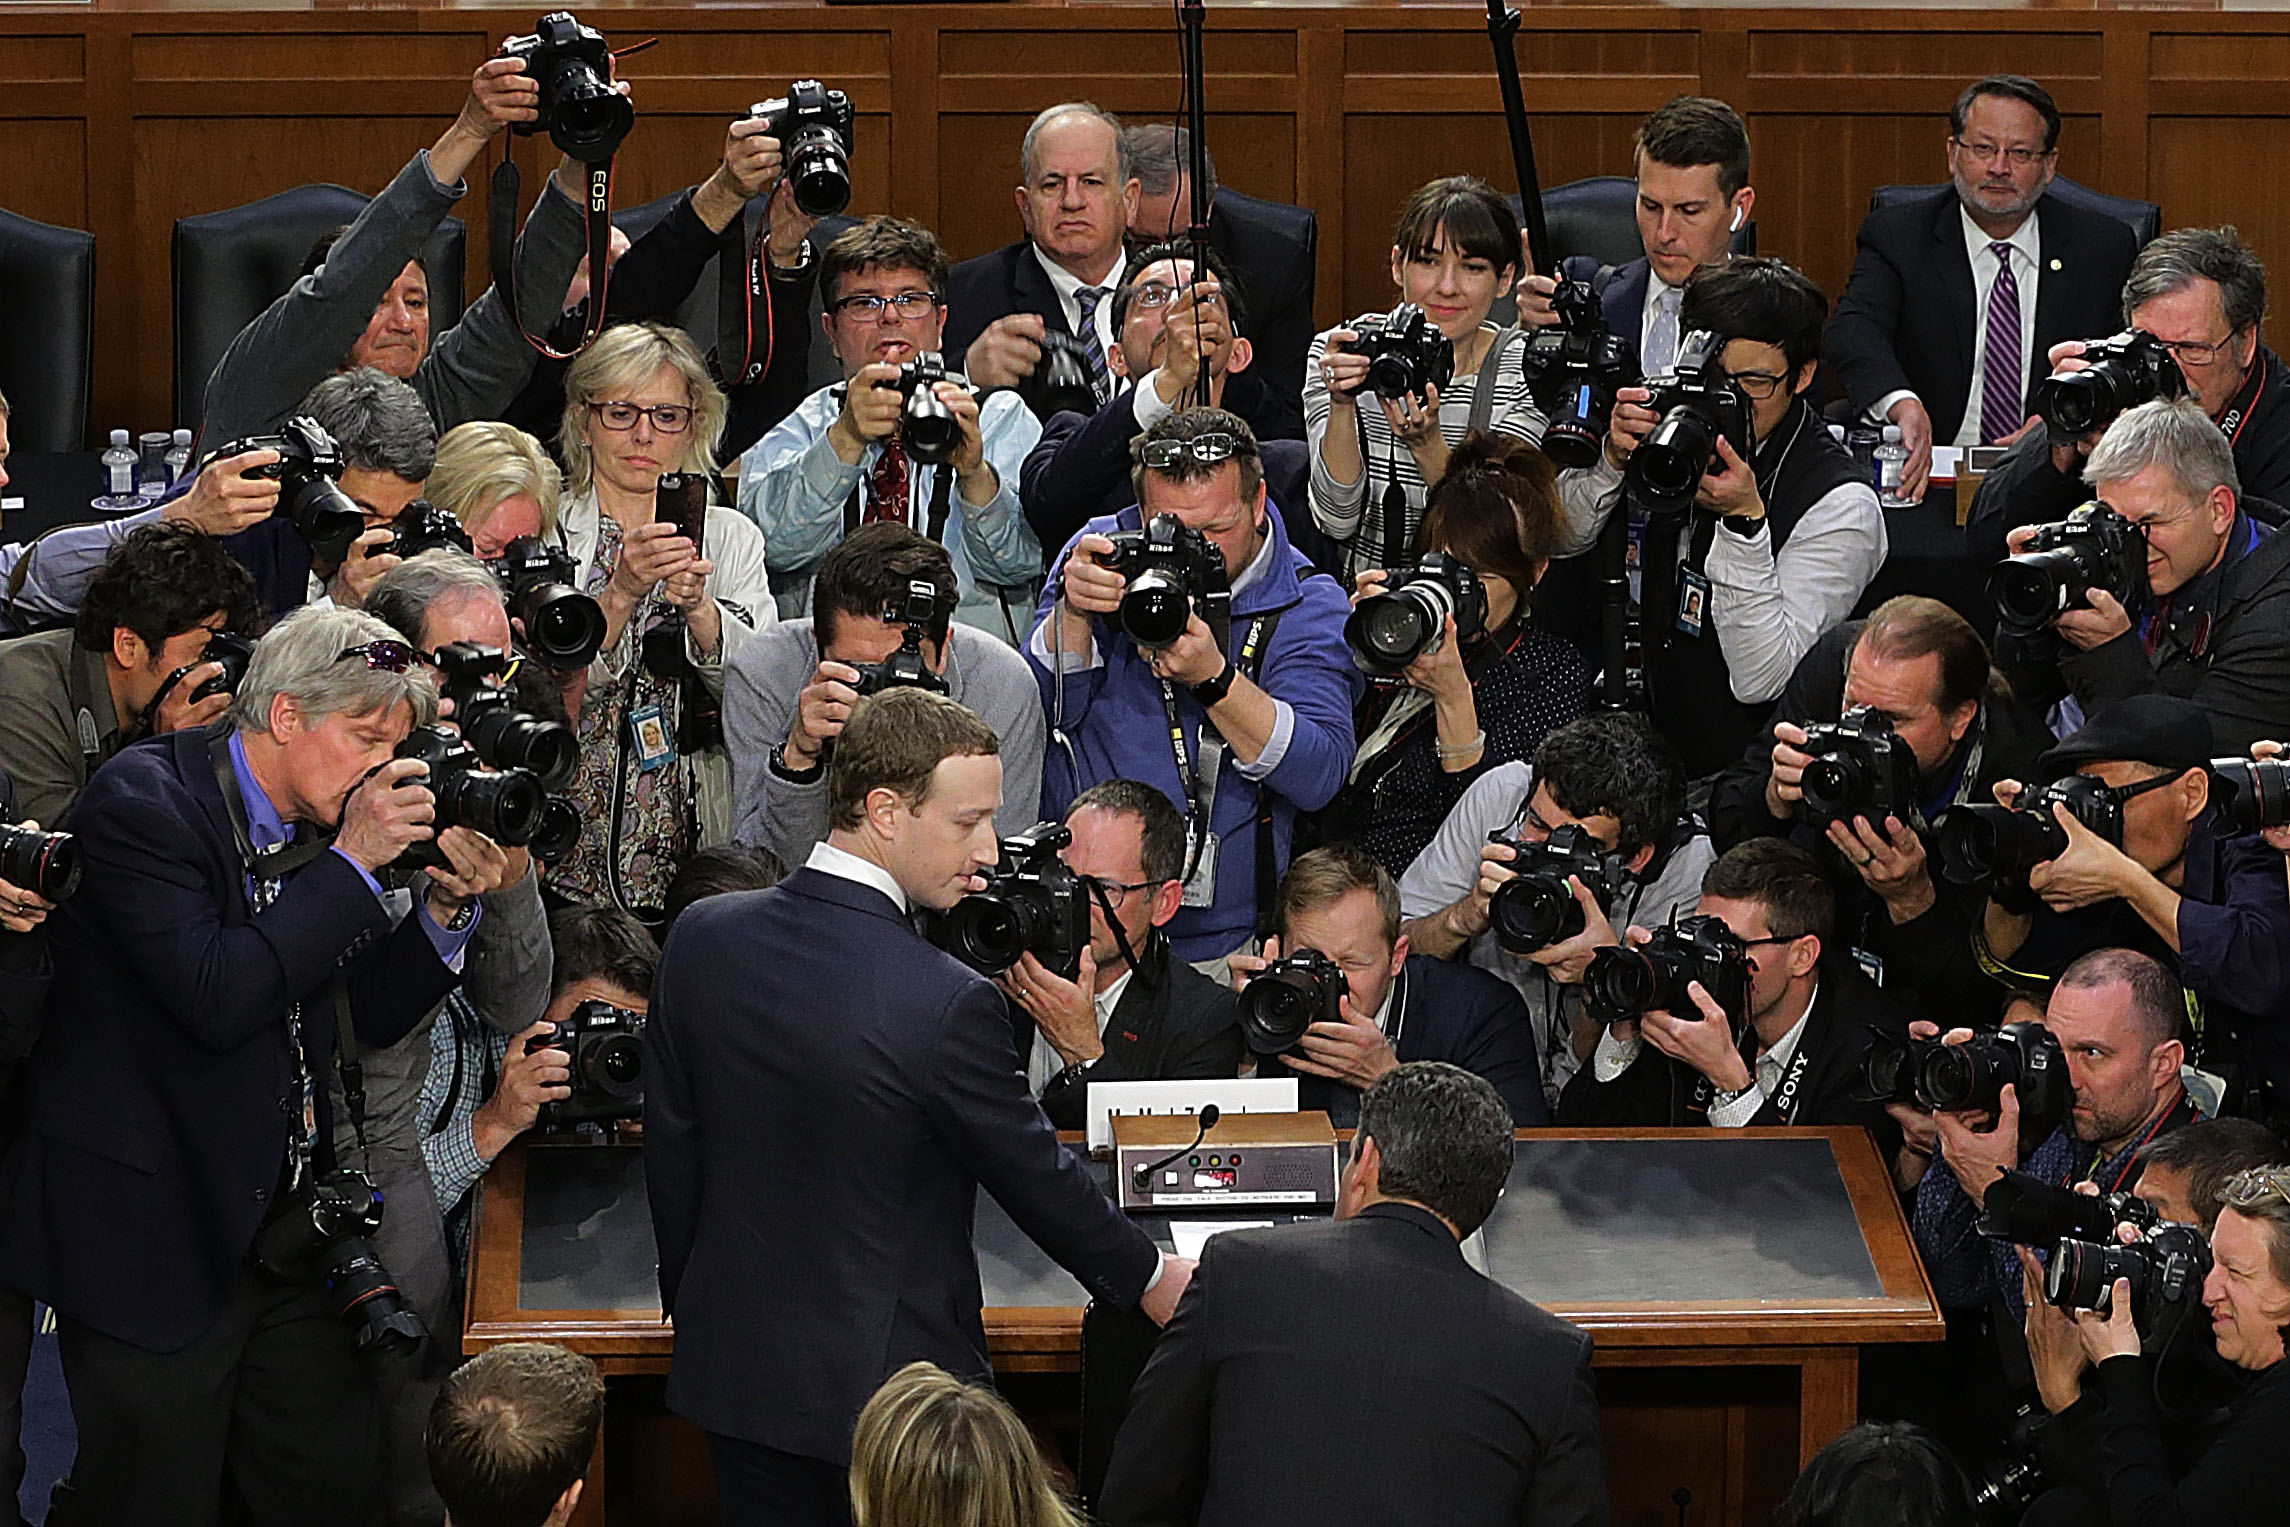 Facebook CEO Mark Zuckerberg surrounded by cameras and microphones and photographers and journalists.